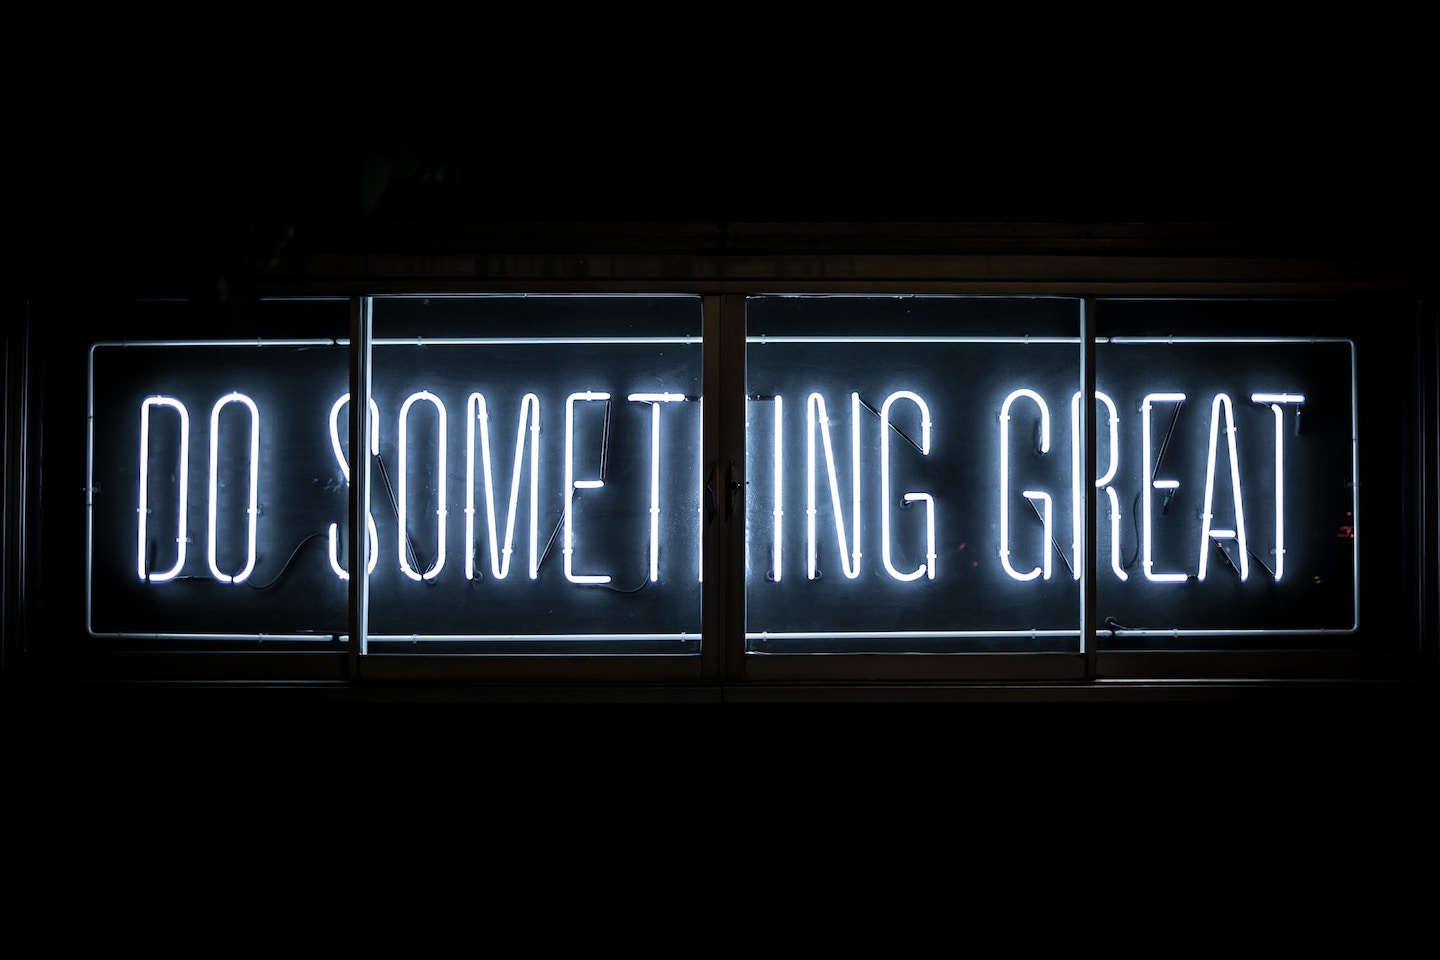 'Do Something Great' Neon Sign. Photo by  Clark Tibbs  on  Unsplash